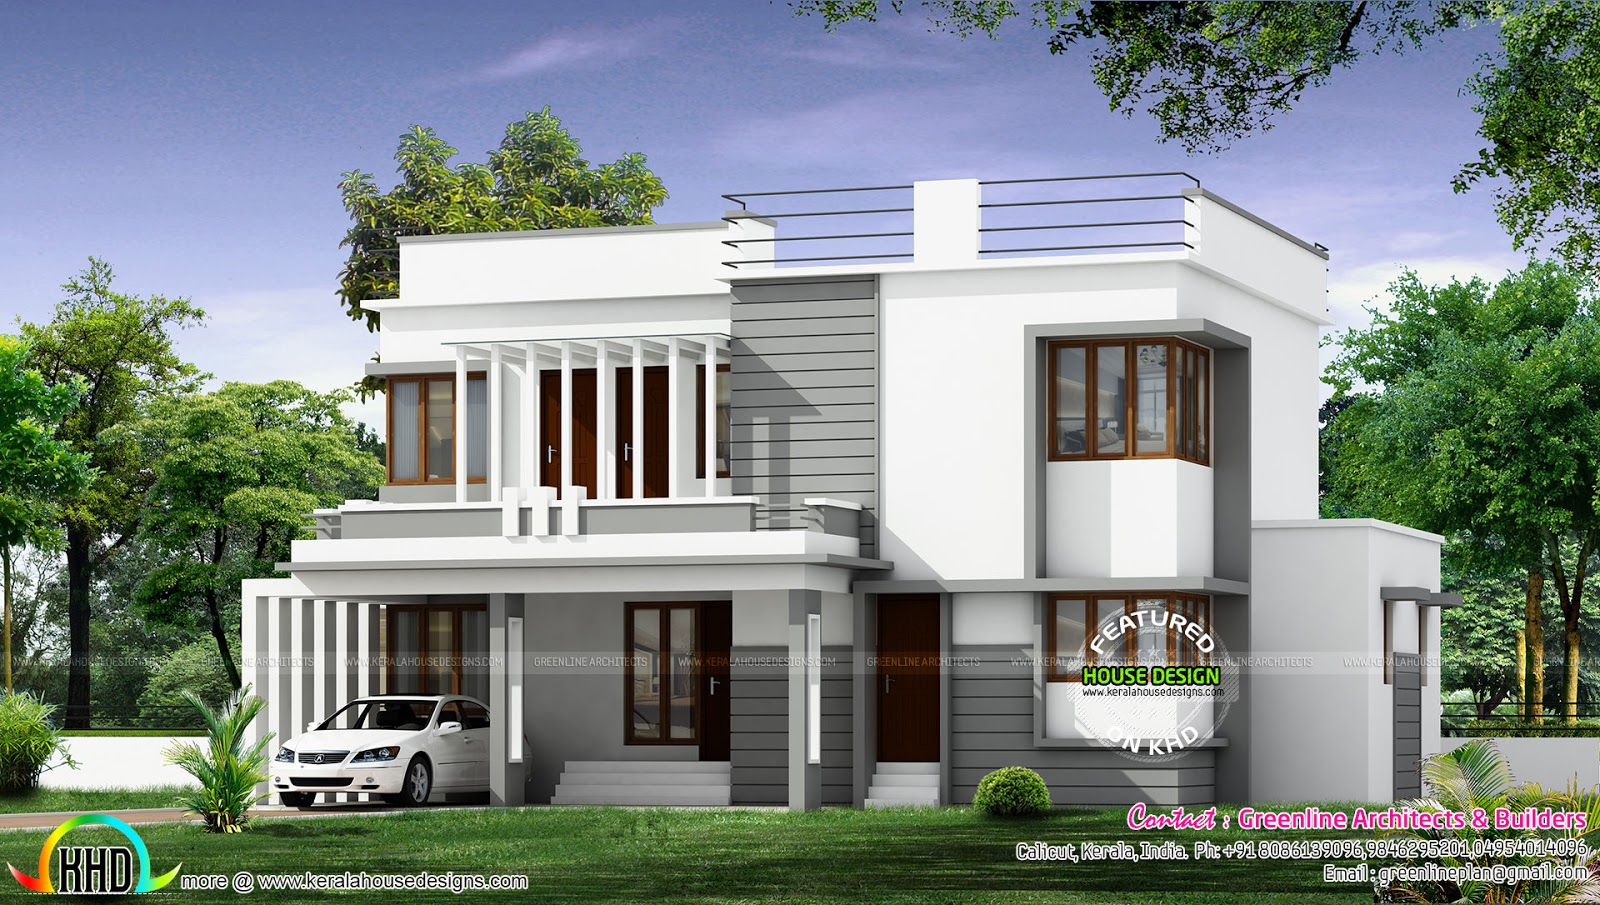 New modern house architecture kerala home design and for New houses plans